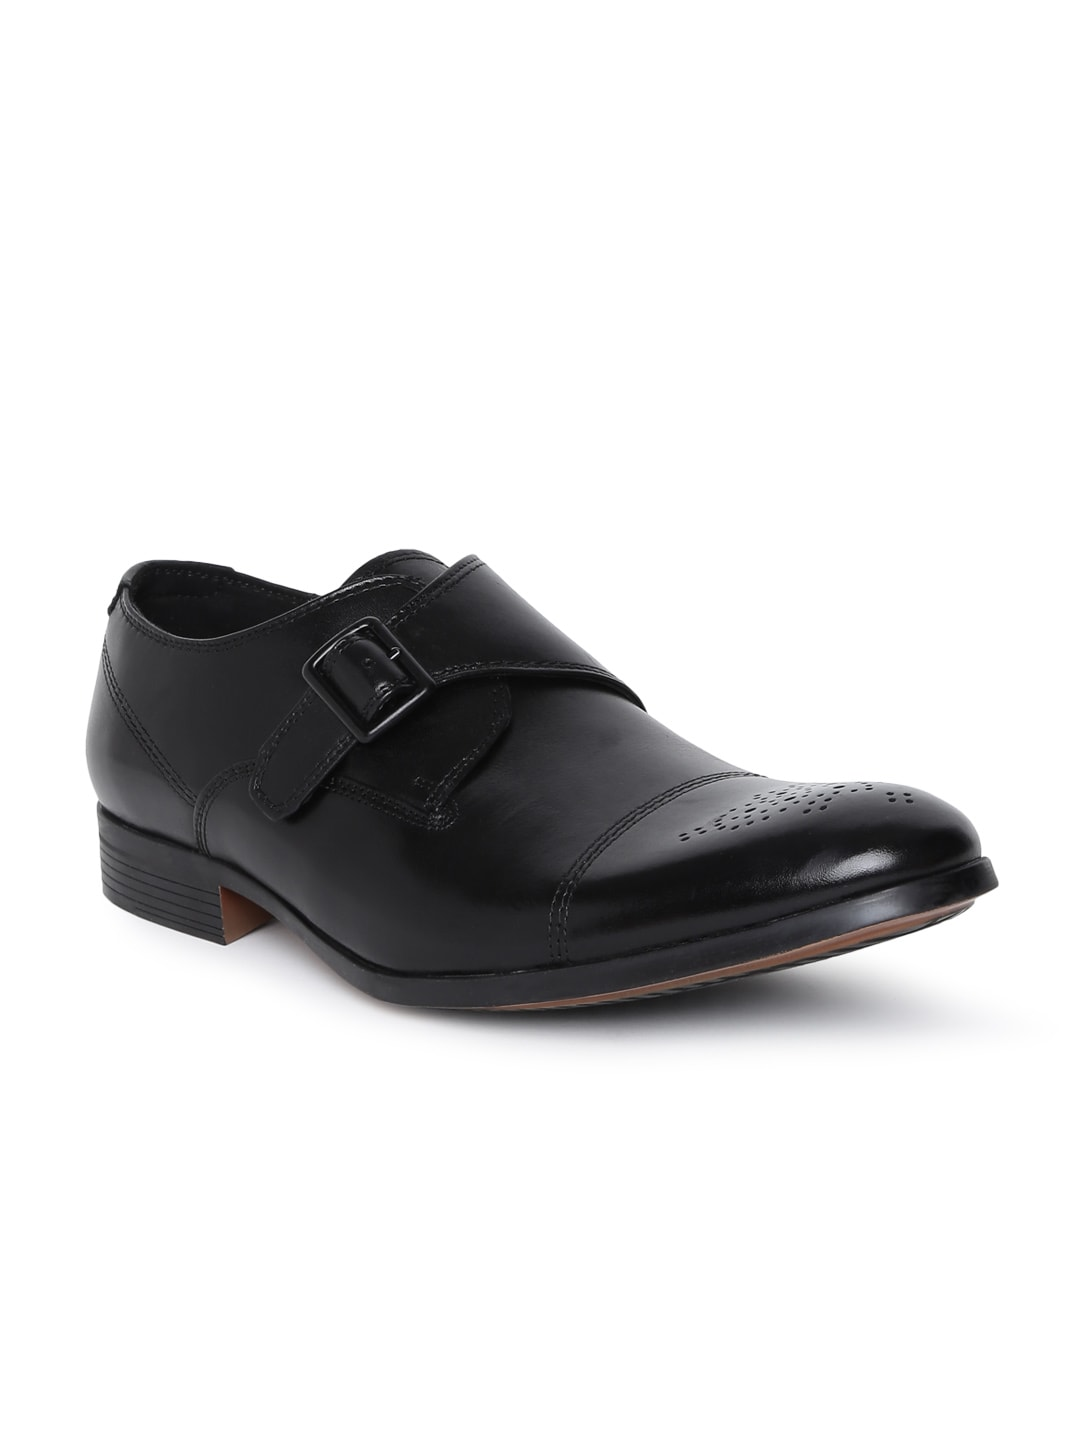 b77b1d88ca7 CLARKS - Exclusive Clarks Shoes Online Store in India - Myntra